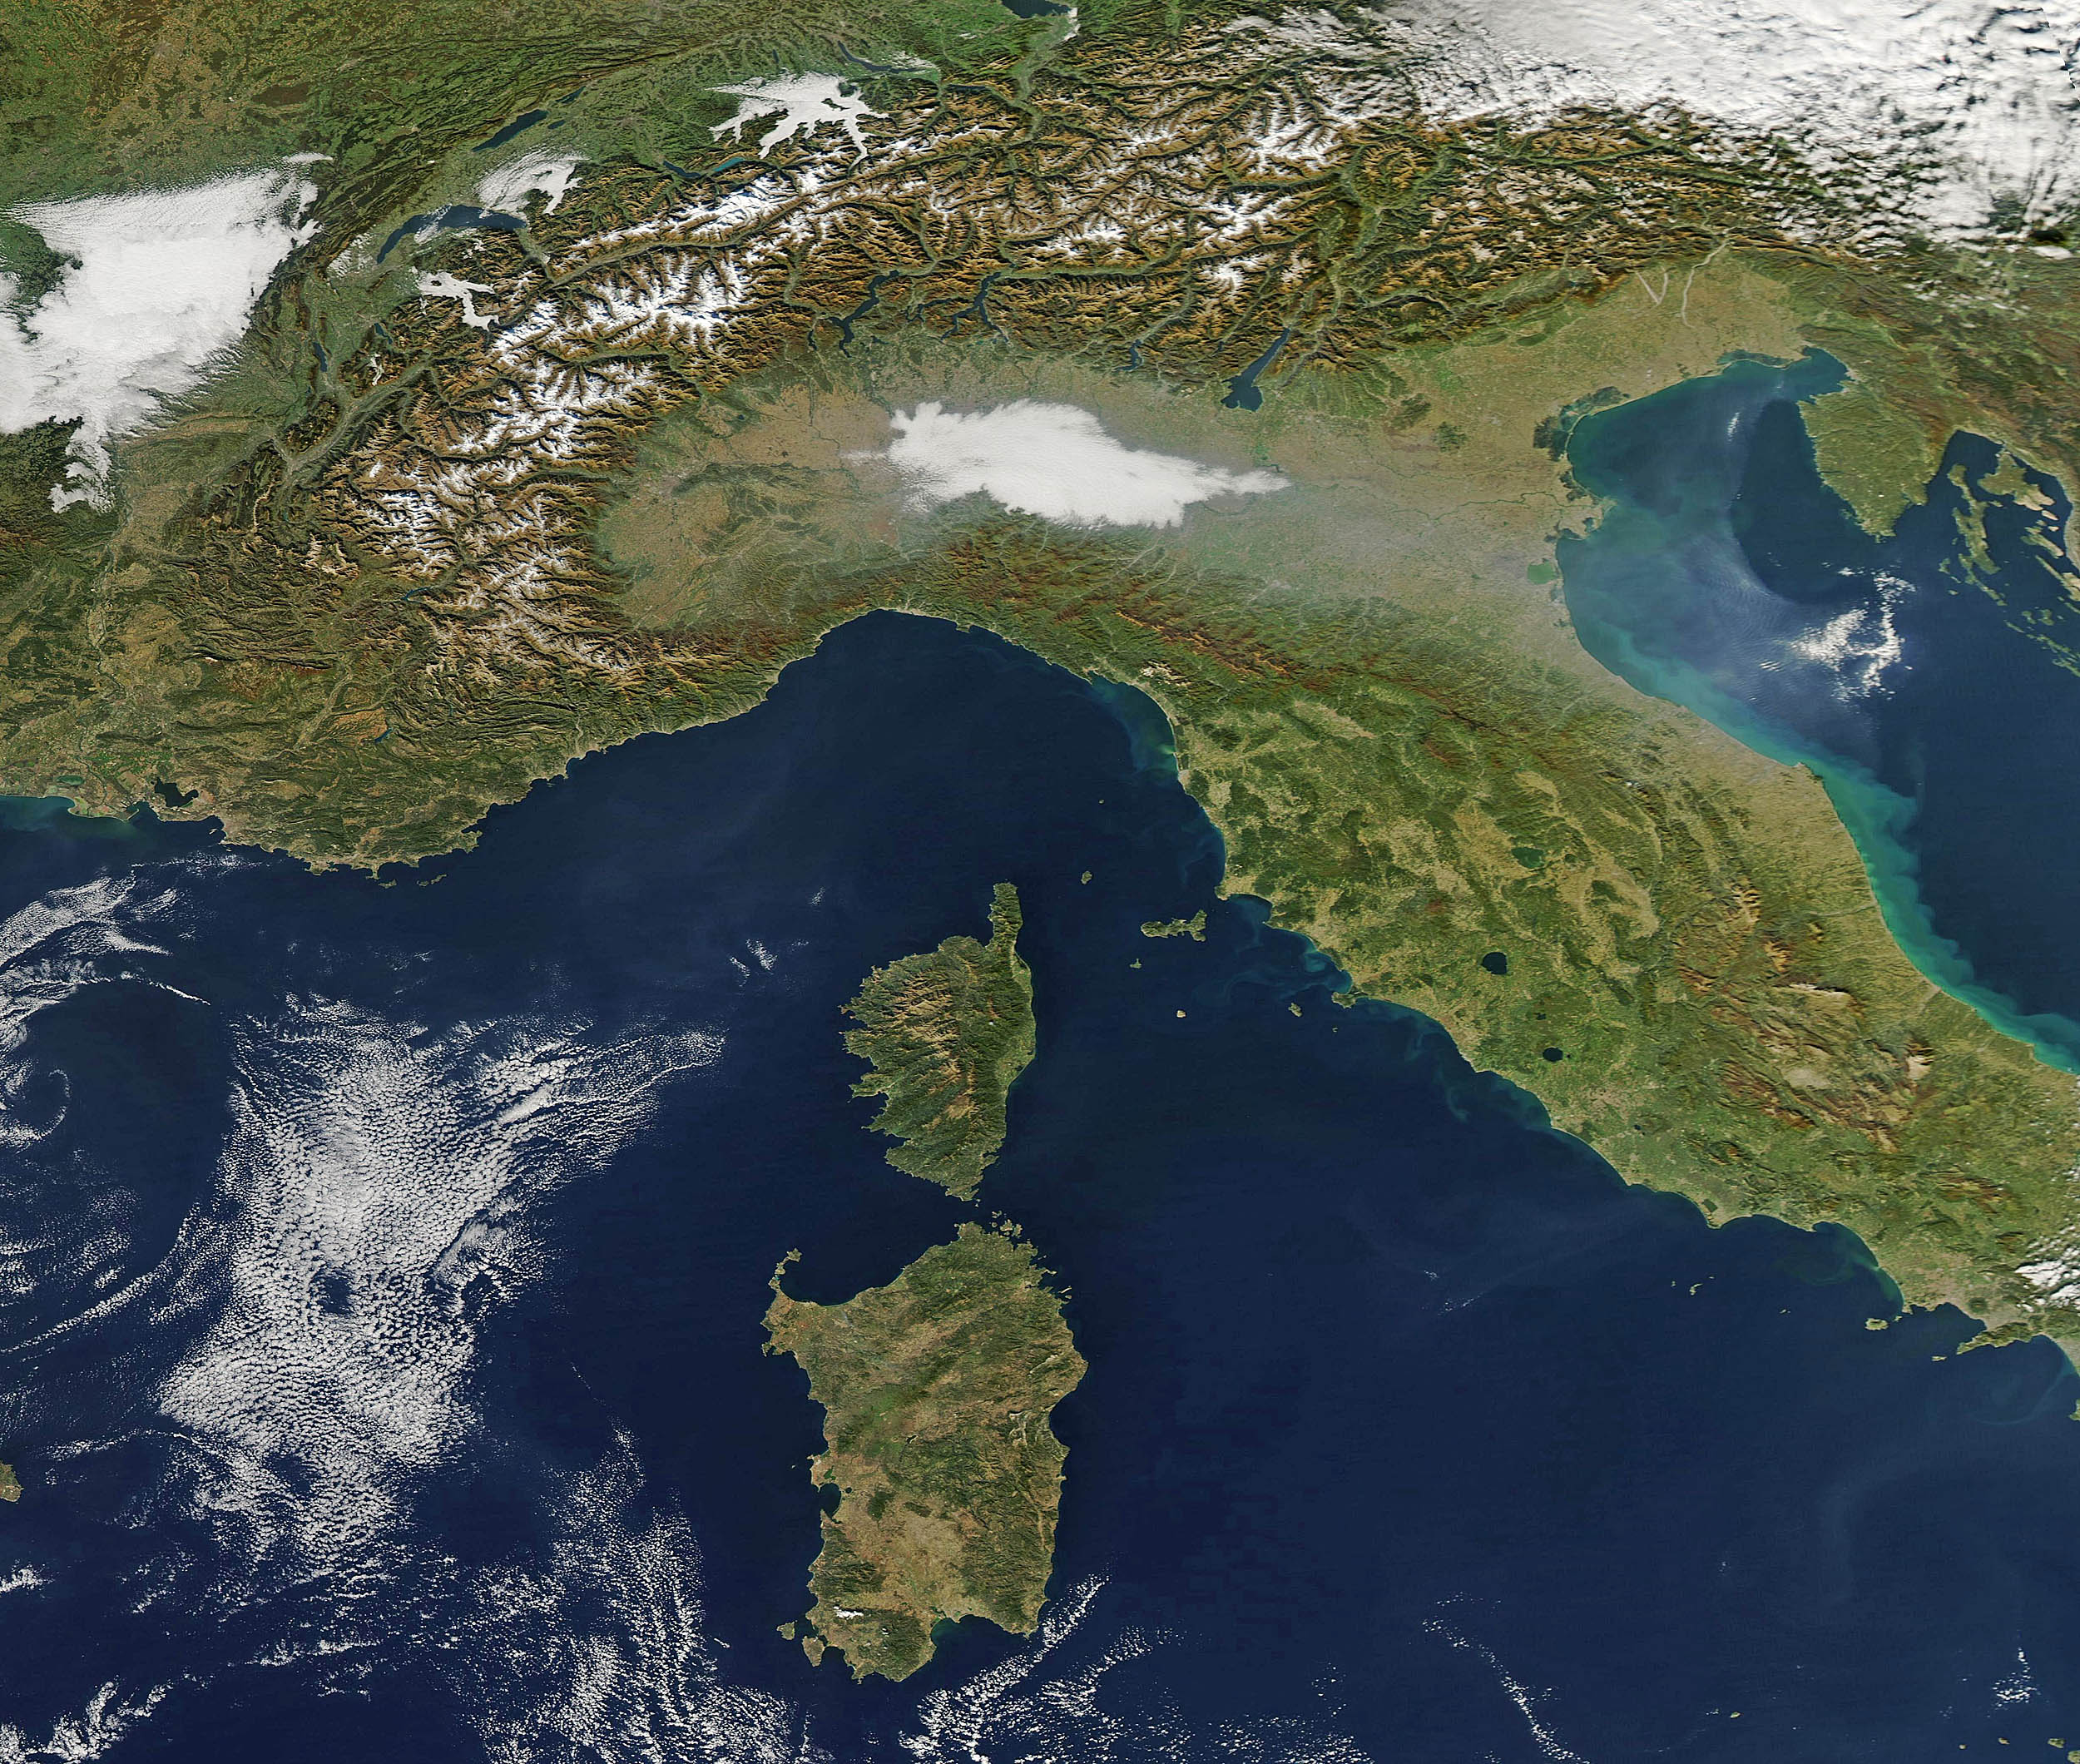 Southern Europe in autumn